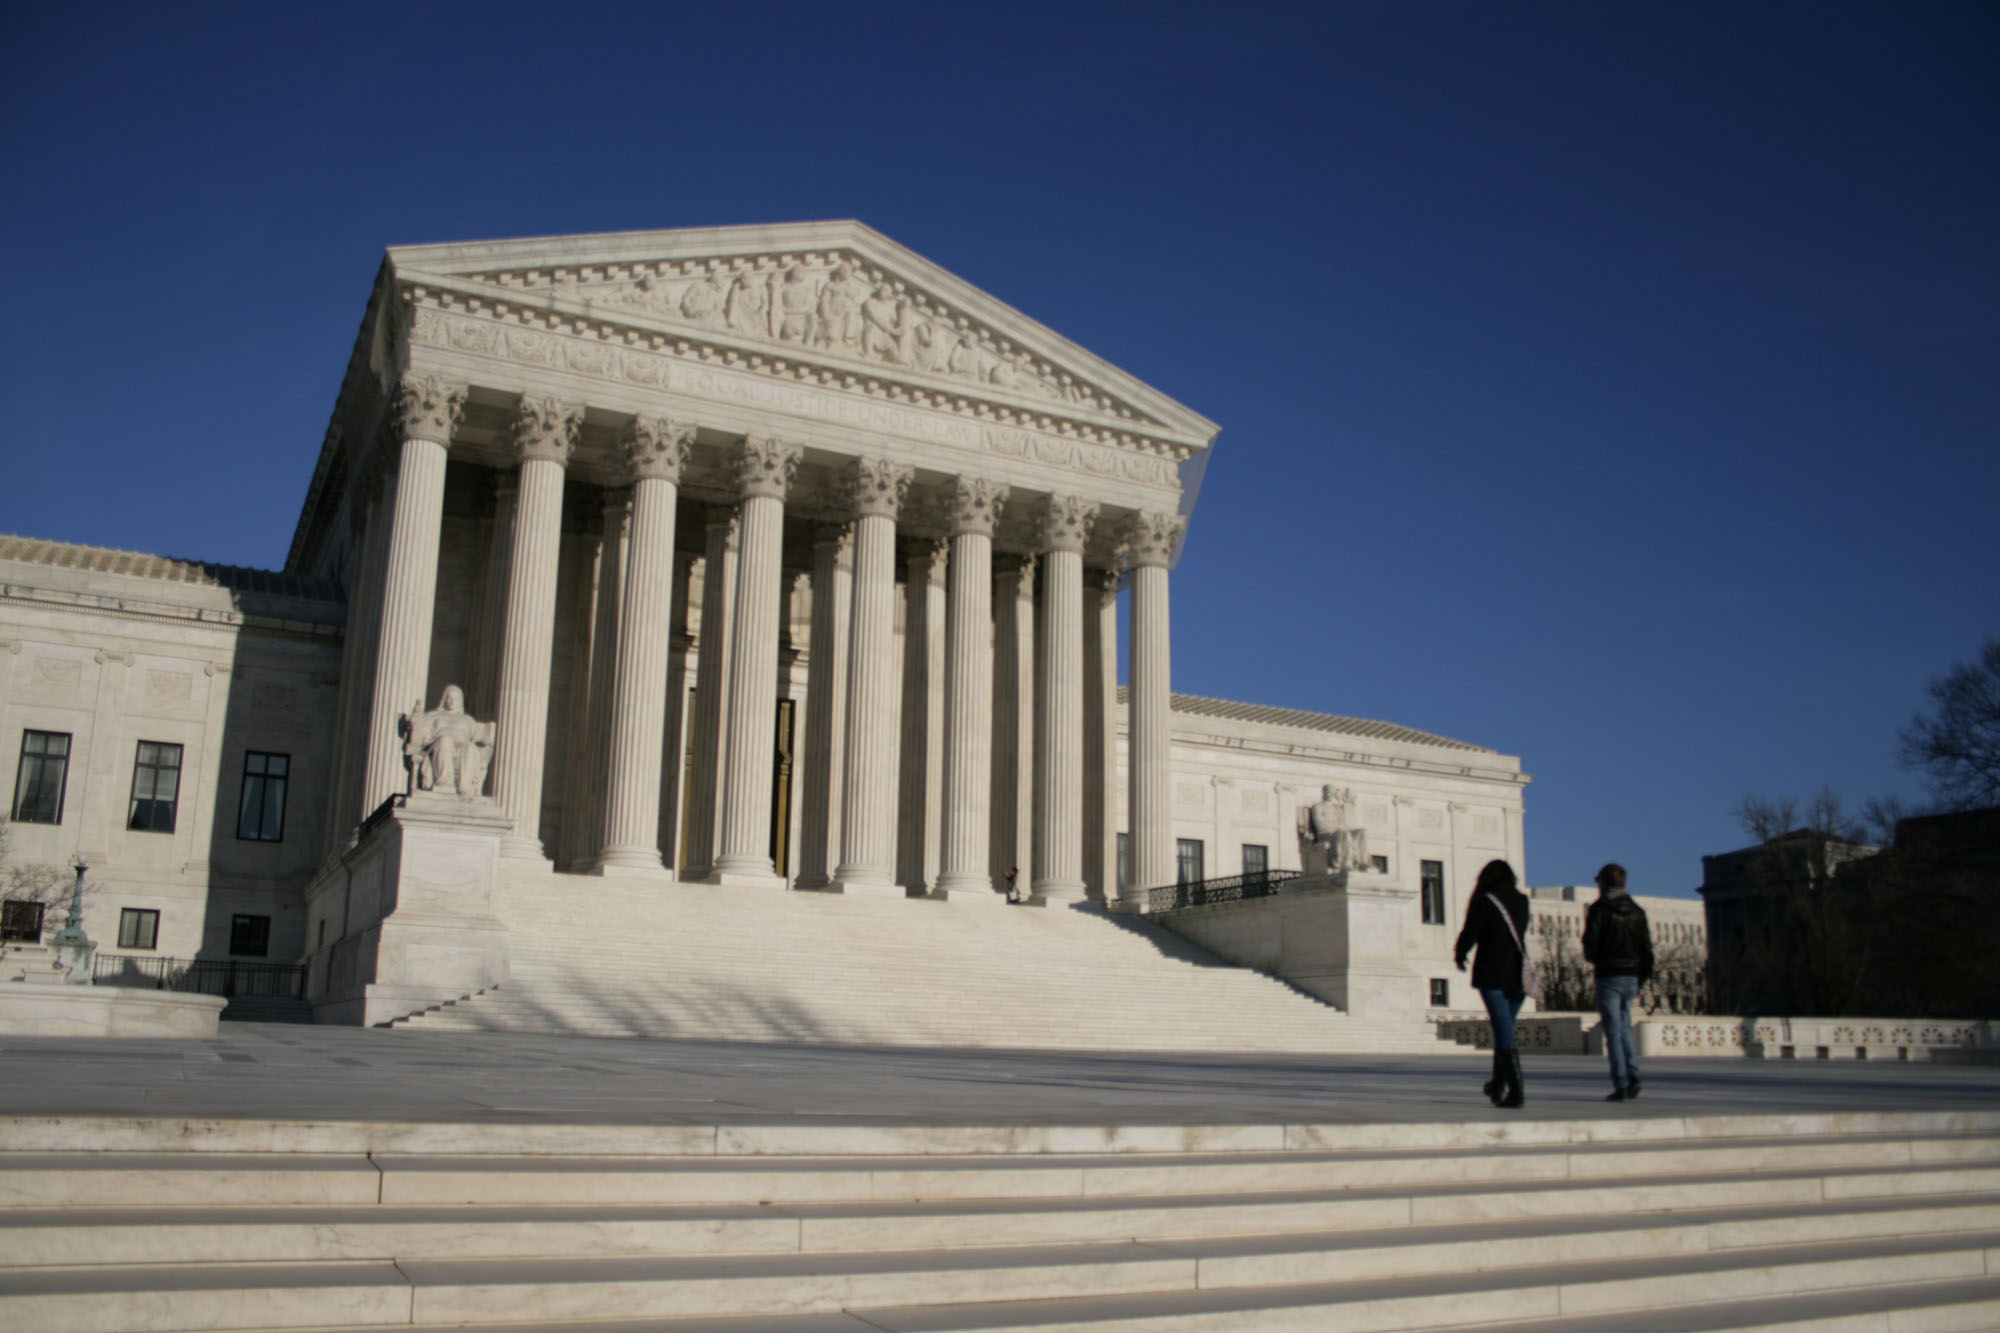 Supreme Court begins term with another Az case on docket